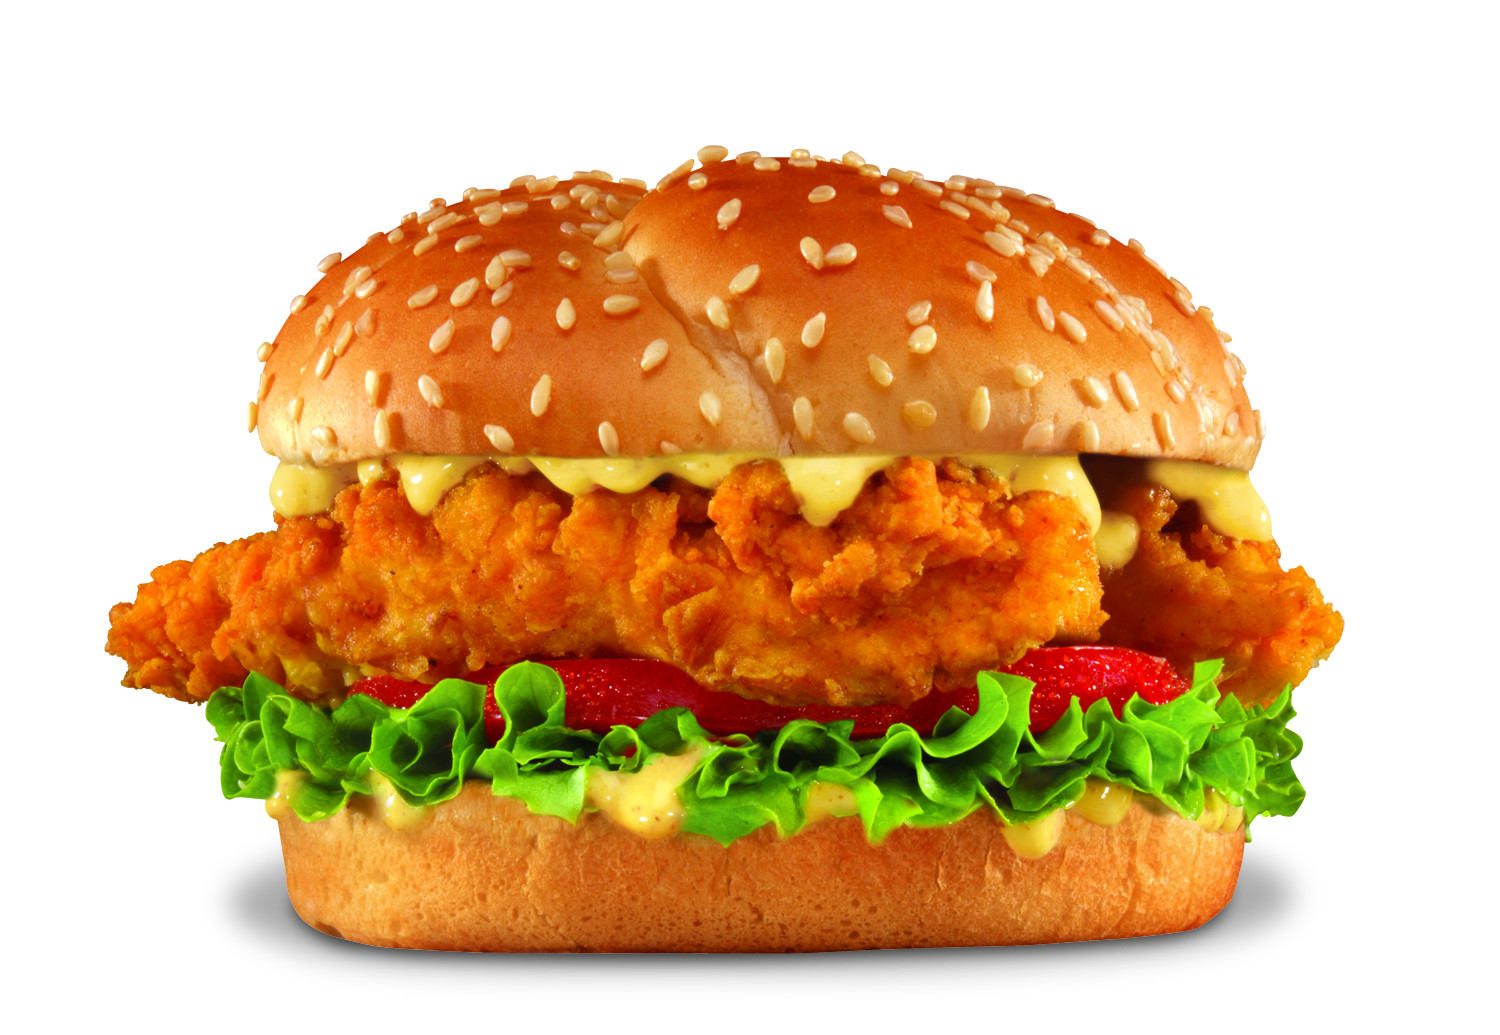 Chicken Tenders Sandwich  Hardee s offers new way to enjoy its chicken tenders with